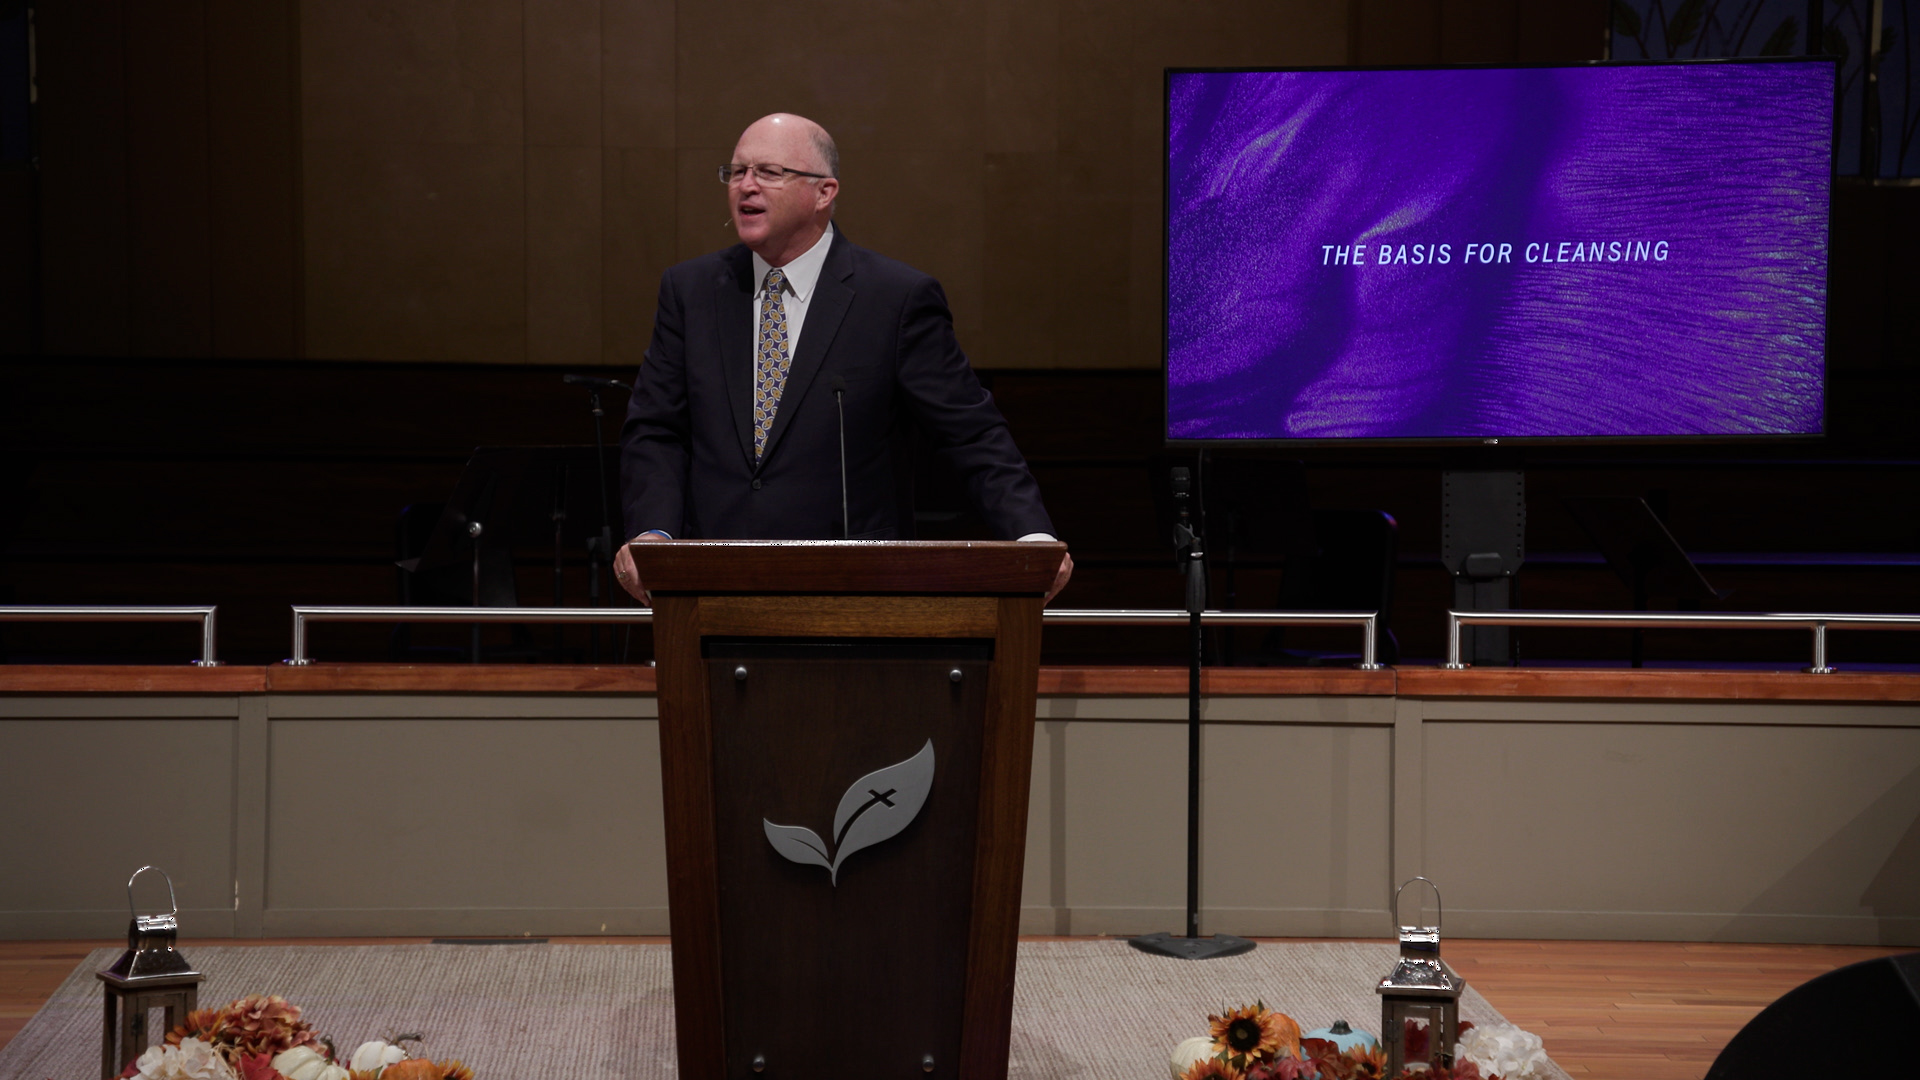 Pastor Paul Chappell: Assurance in Fellowship